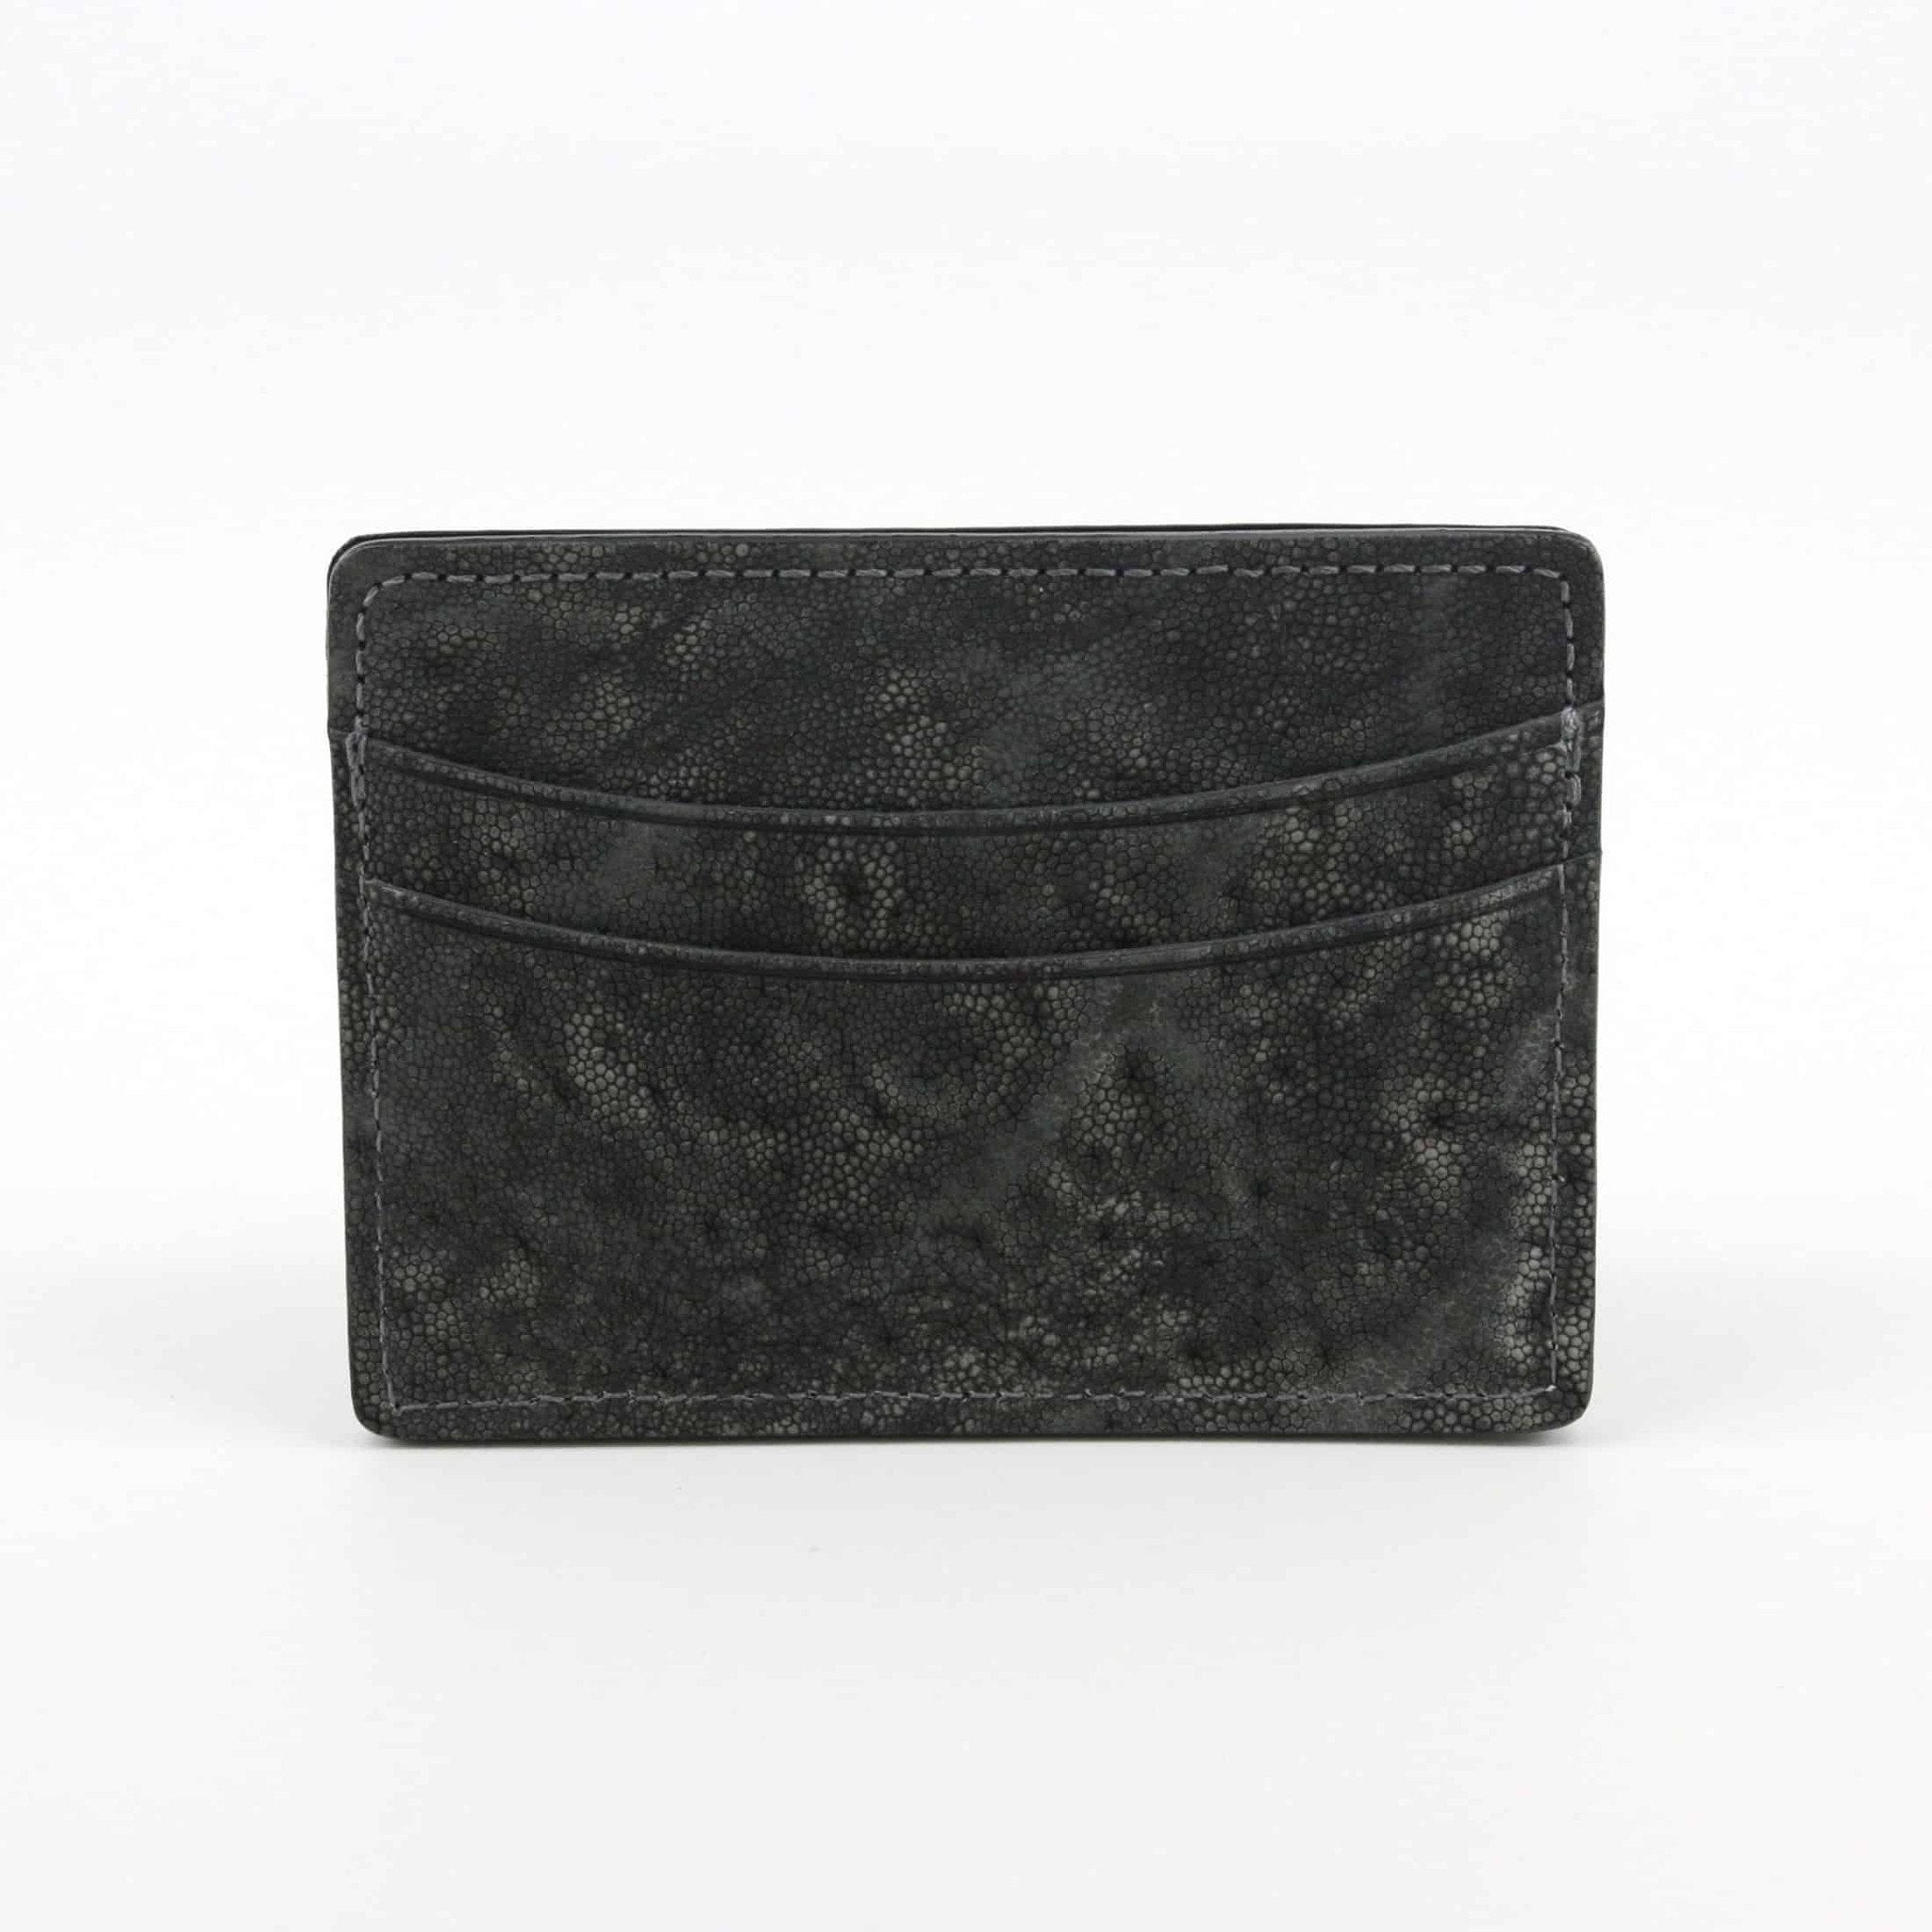 Genuine Elephant Cardcase - Charcoal,WALLETS,GentRow.com, | GentRow.com